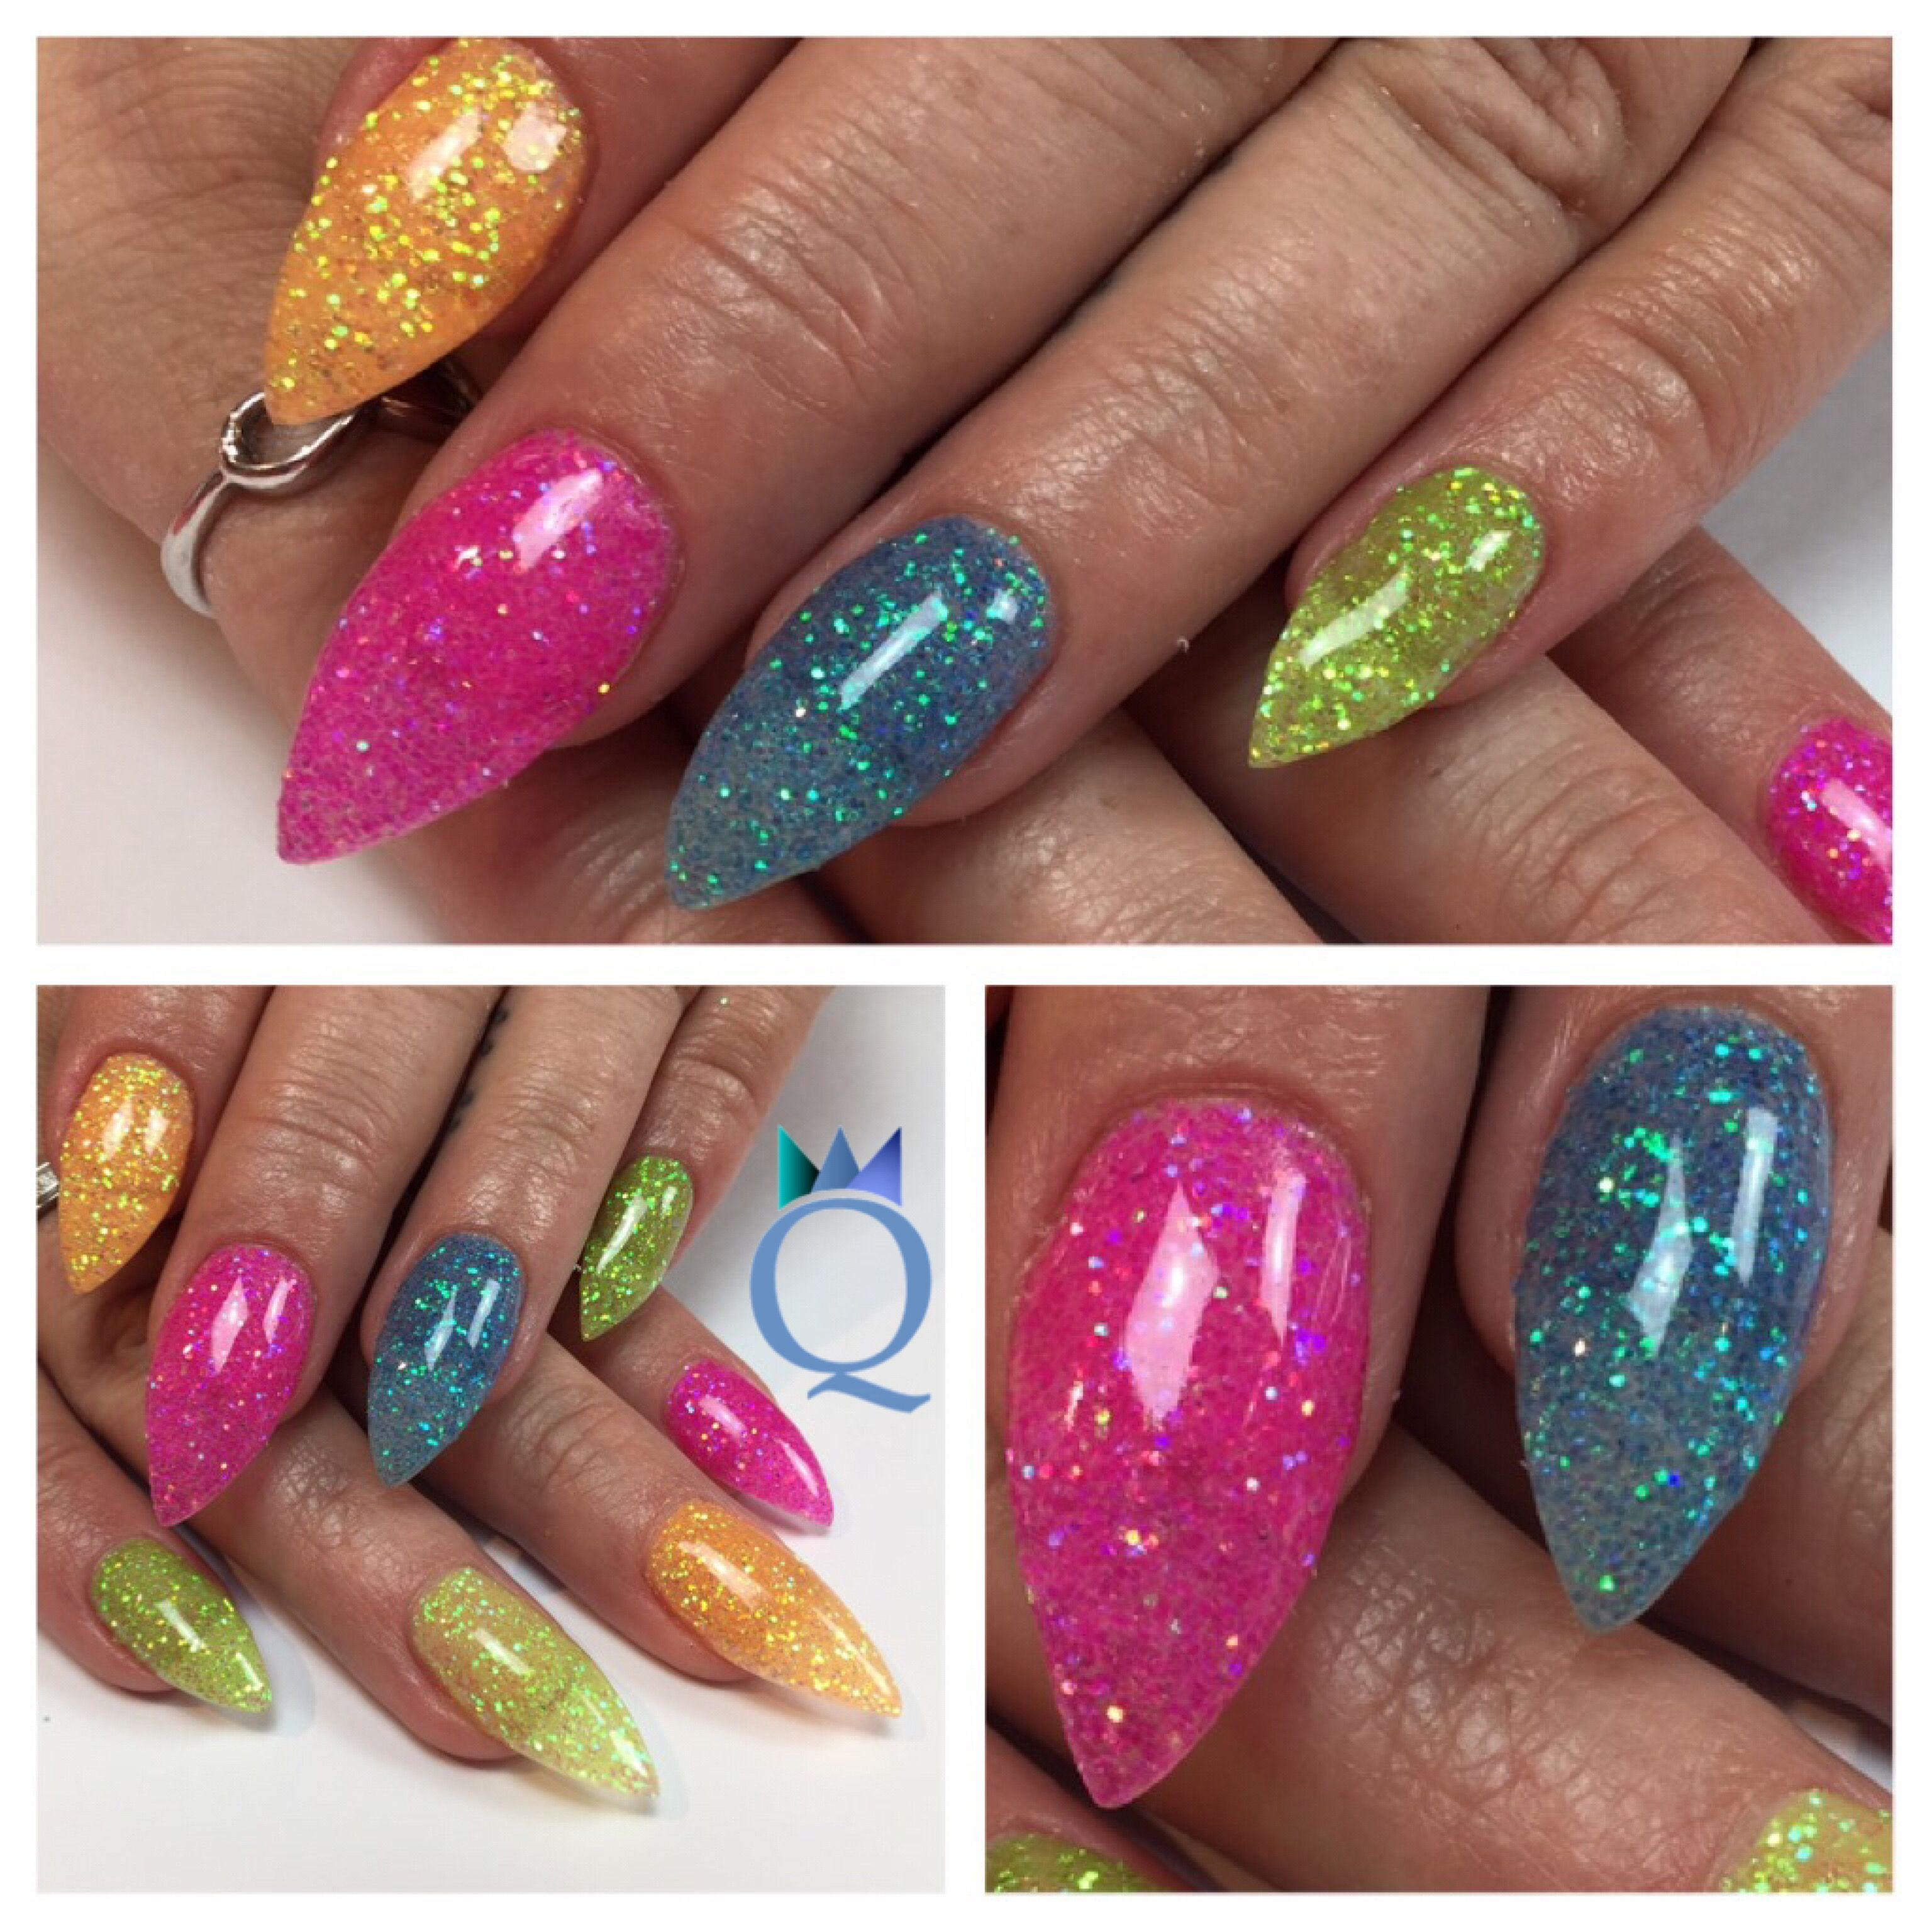 Herbstliche Gelnägel #stilleto #gelnails #nails #neon #glitter #stilletonägel #